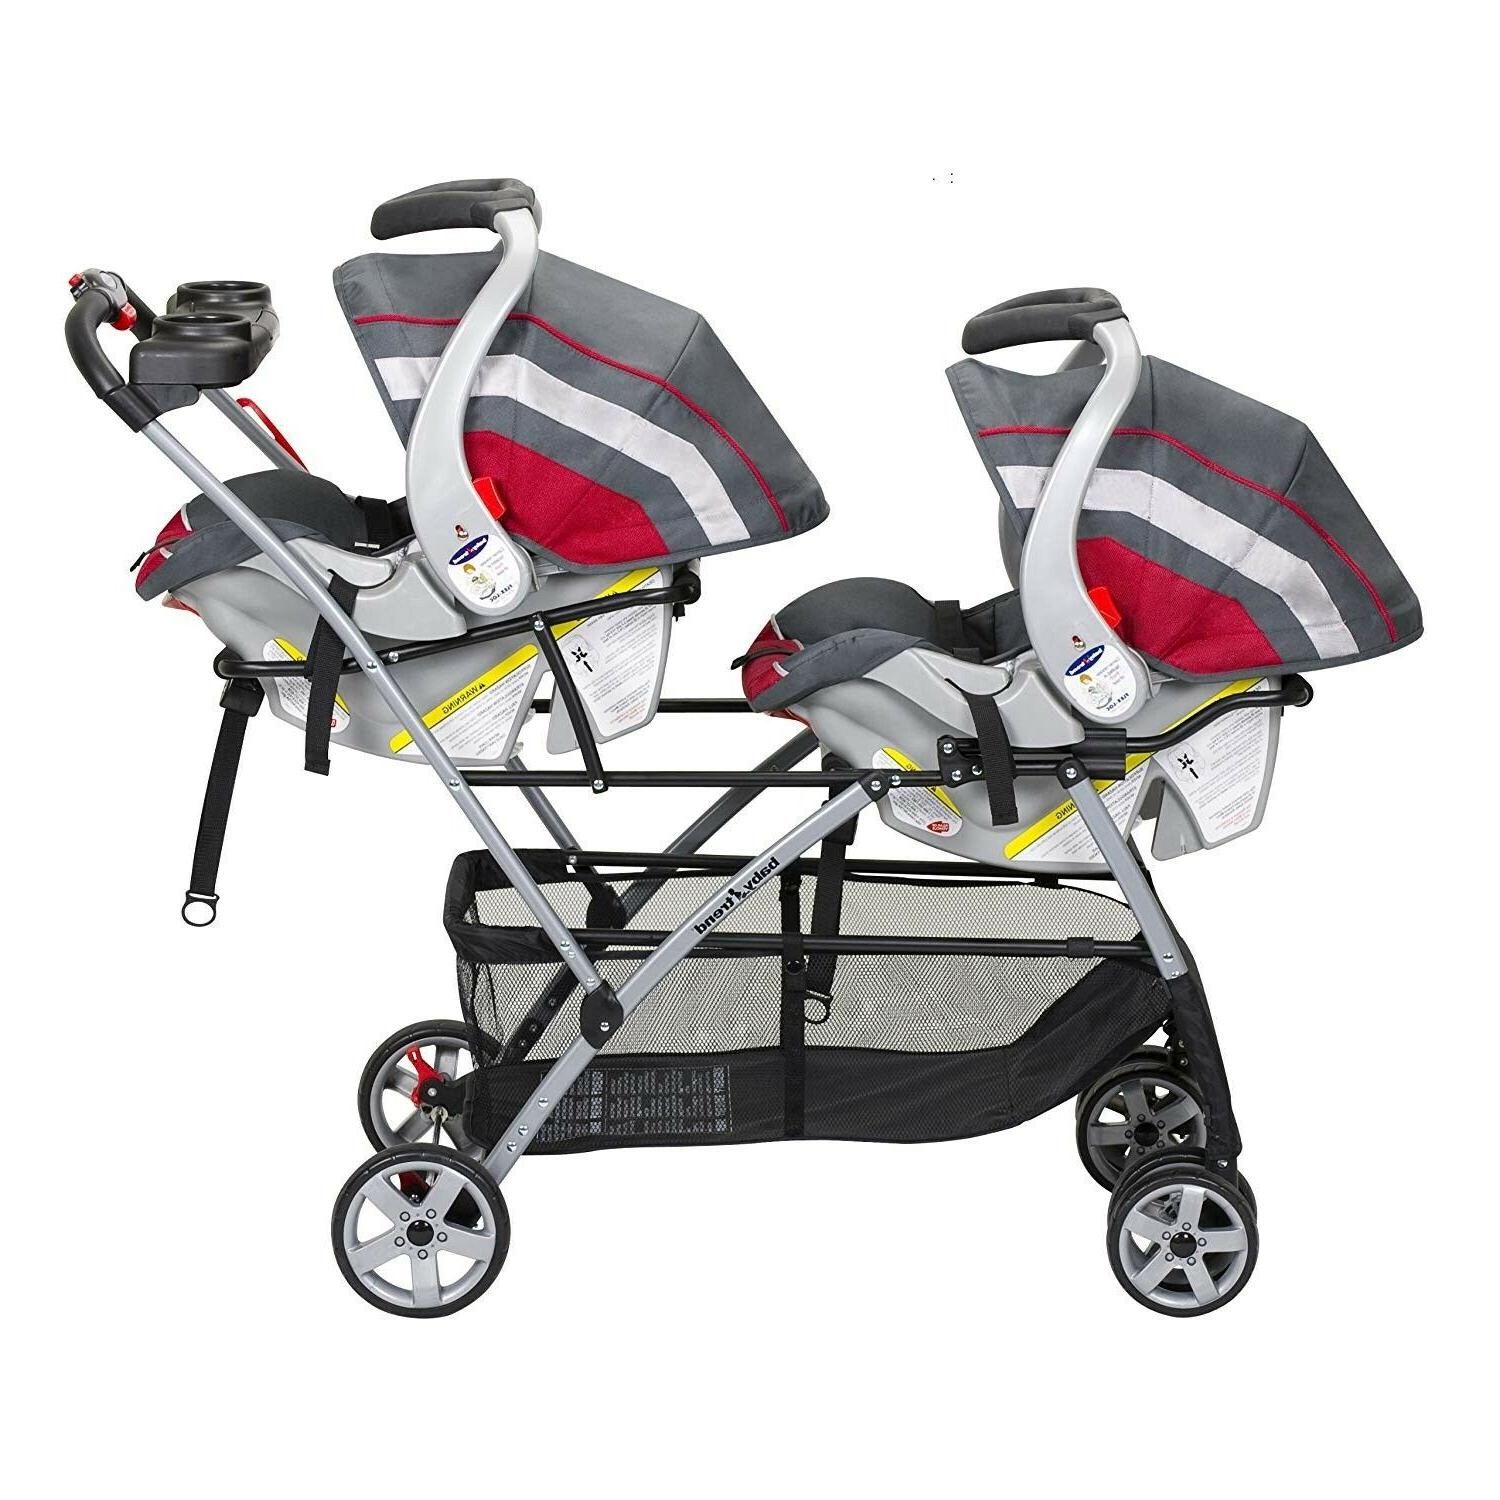 NEW Baby Trend Double Stroller SHIPPING